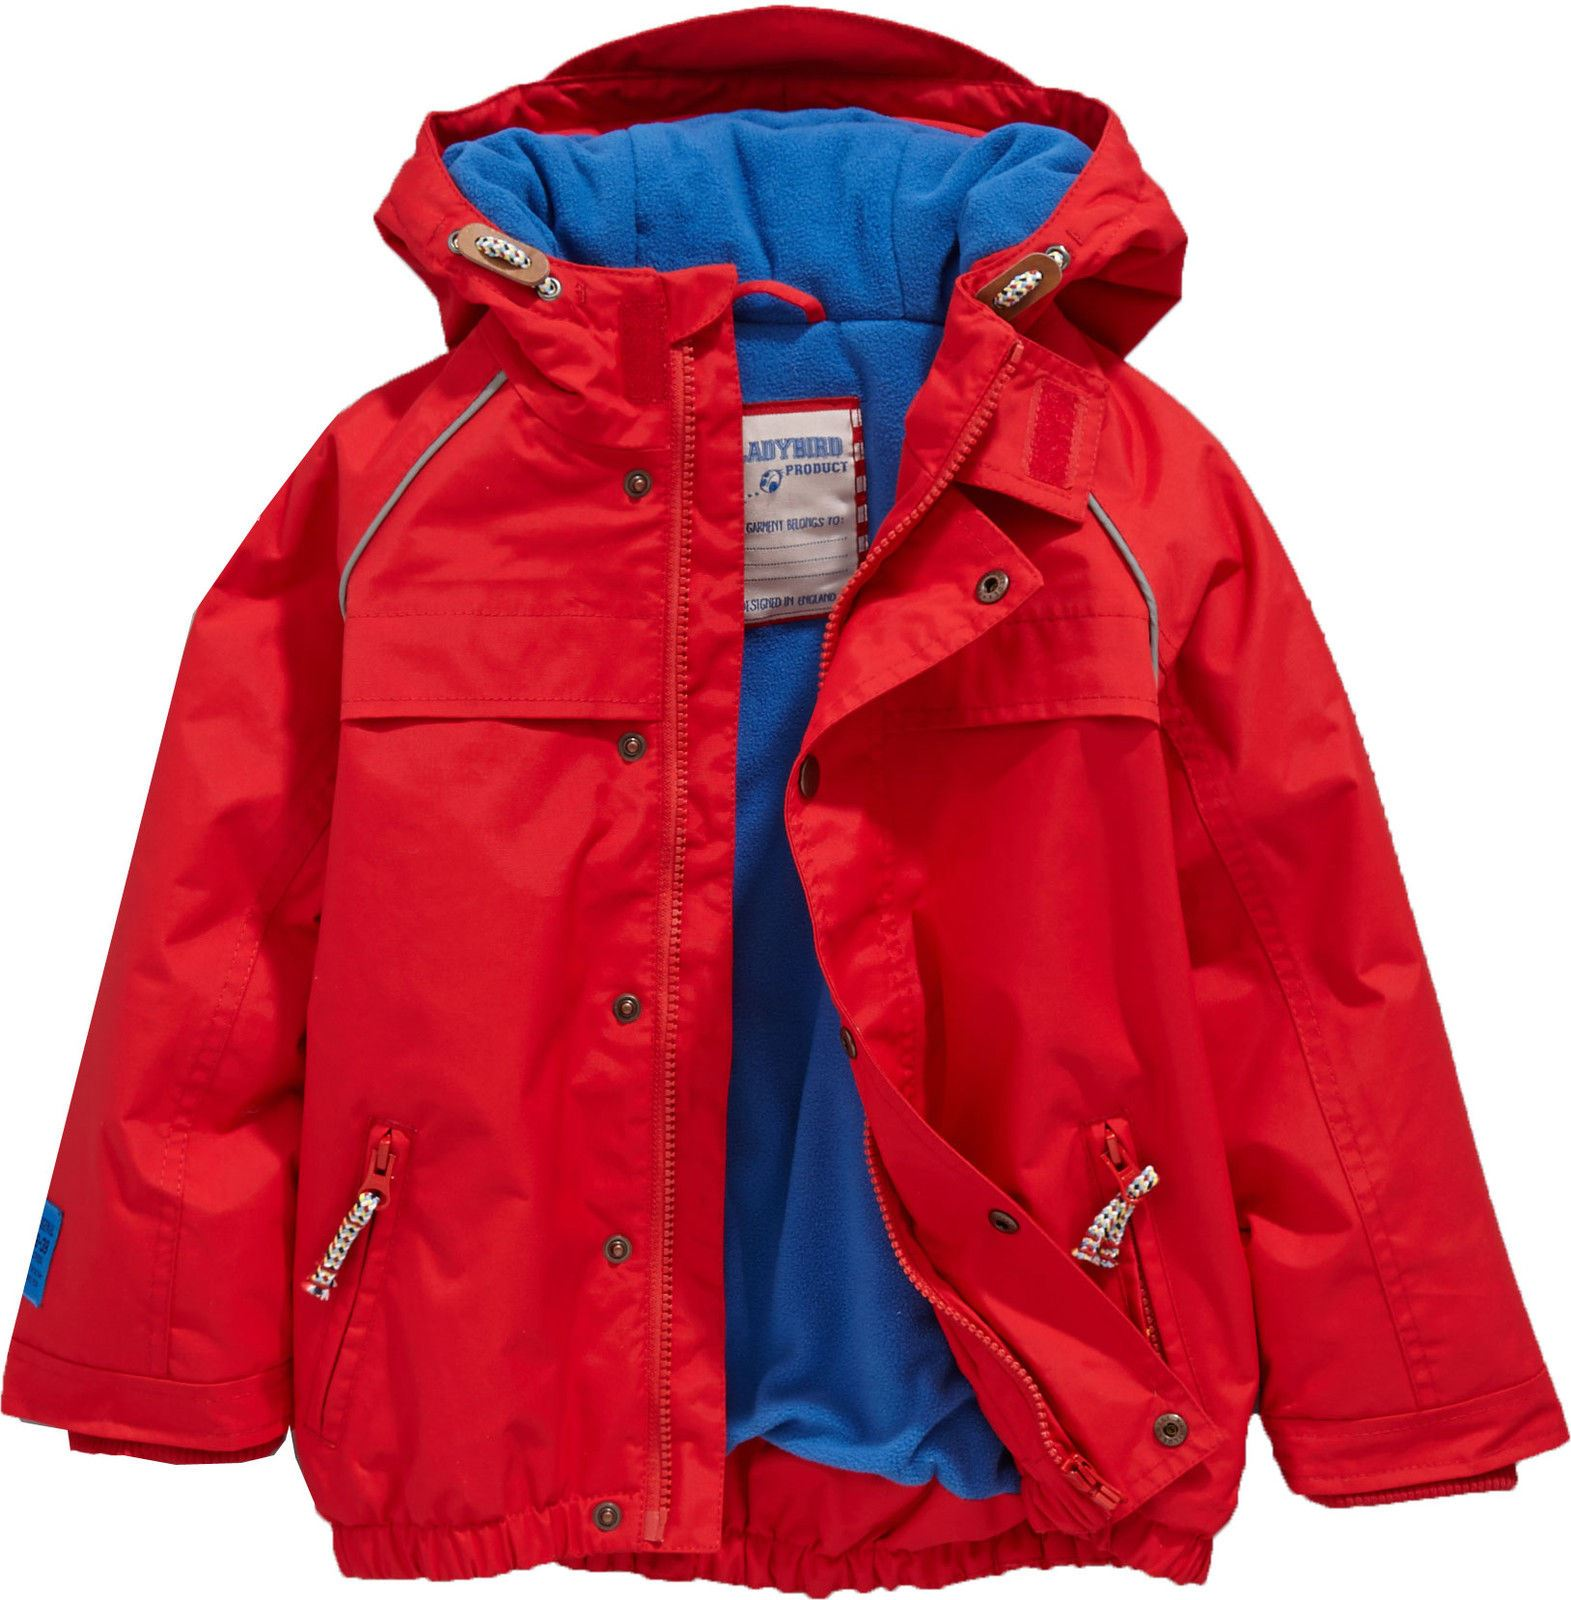 Ladybird Toddler Performance Jacket Infants Red Baby Coat Outerwear